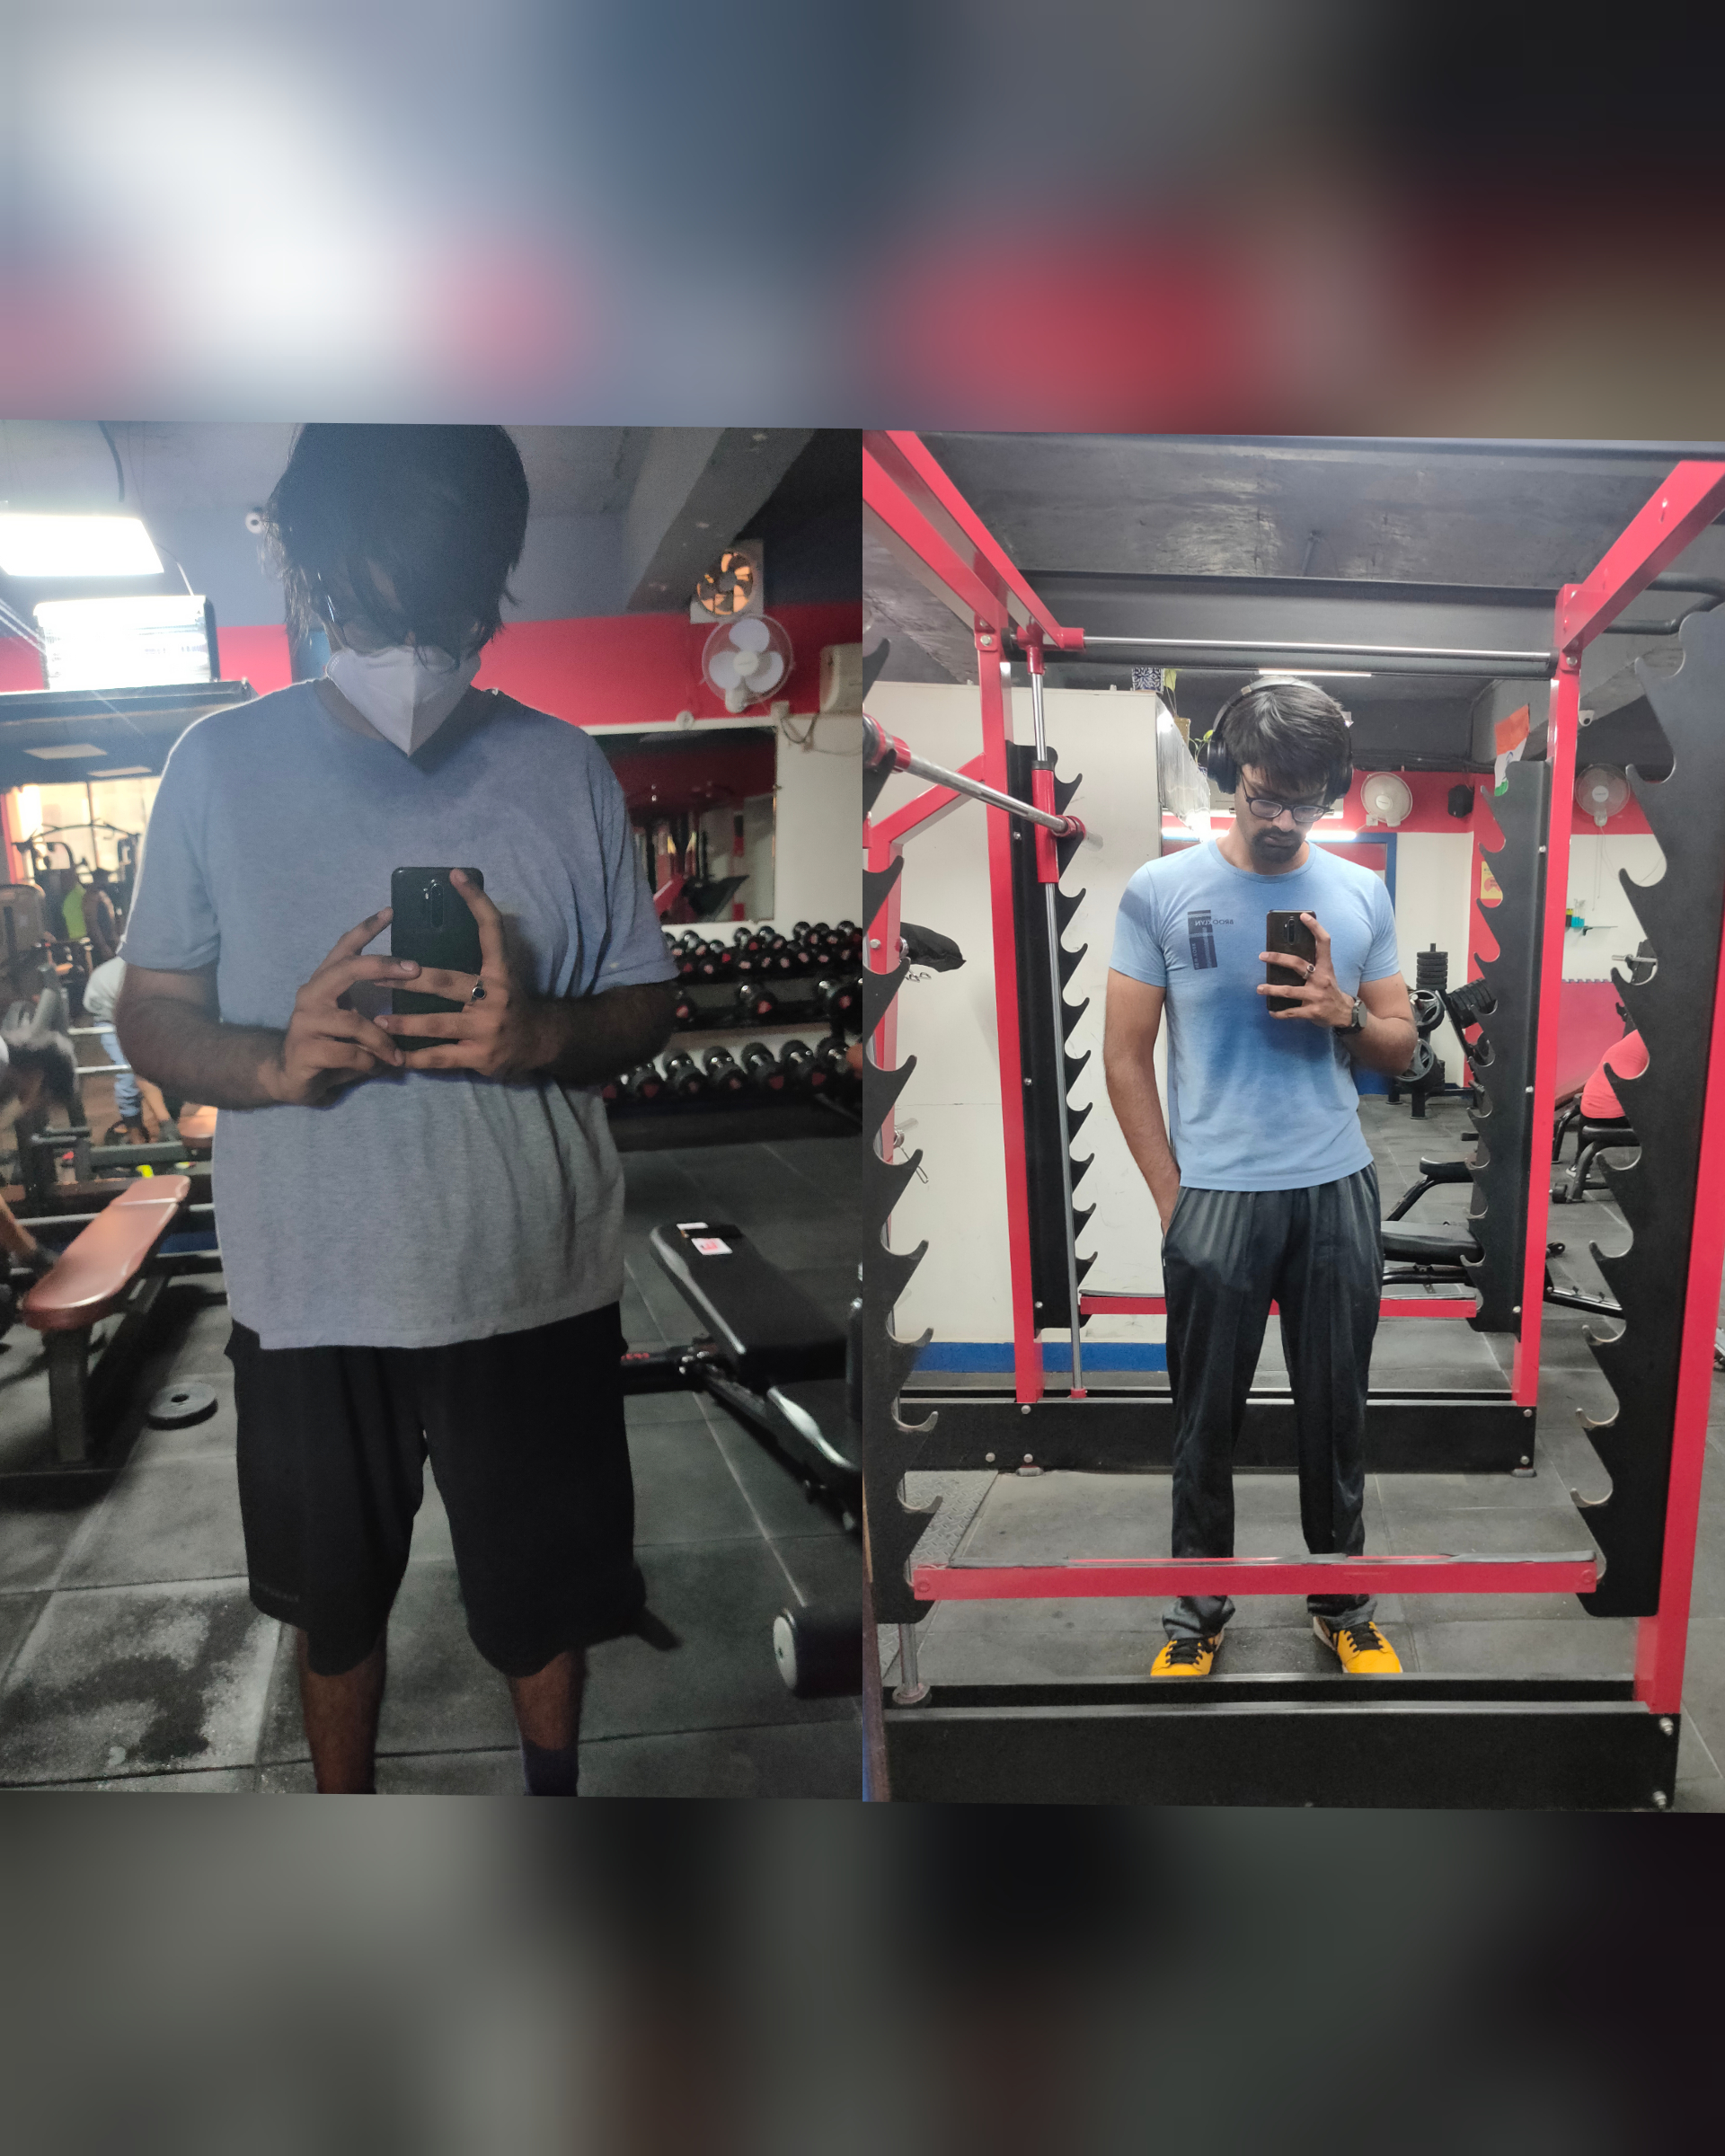 6 foot 2 Male Before and After 86 lbs Fat Loss 264 lbs to 178 lbs